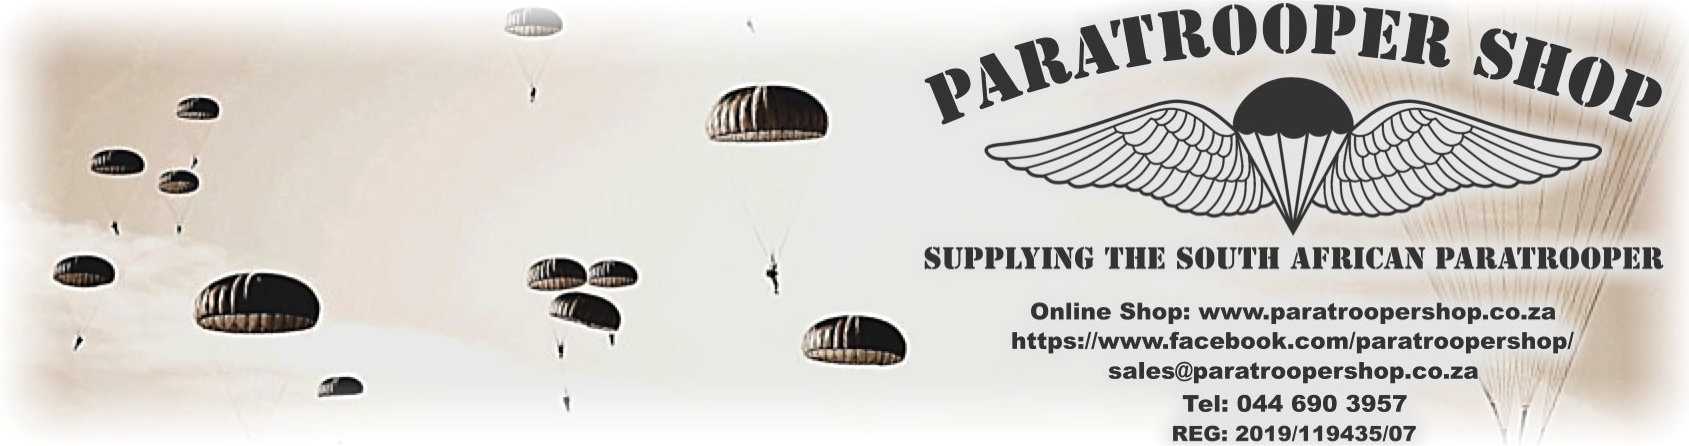 Paratrooper Shop. Supplying the South African Paratrooper